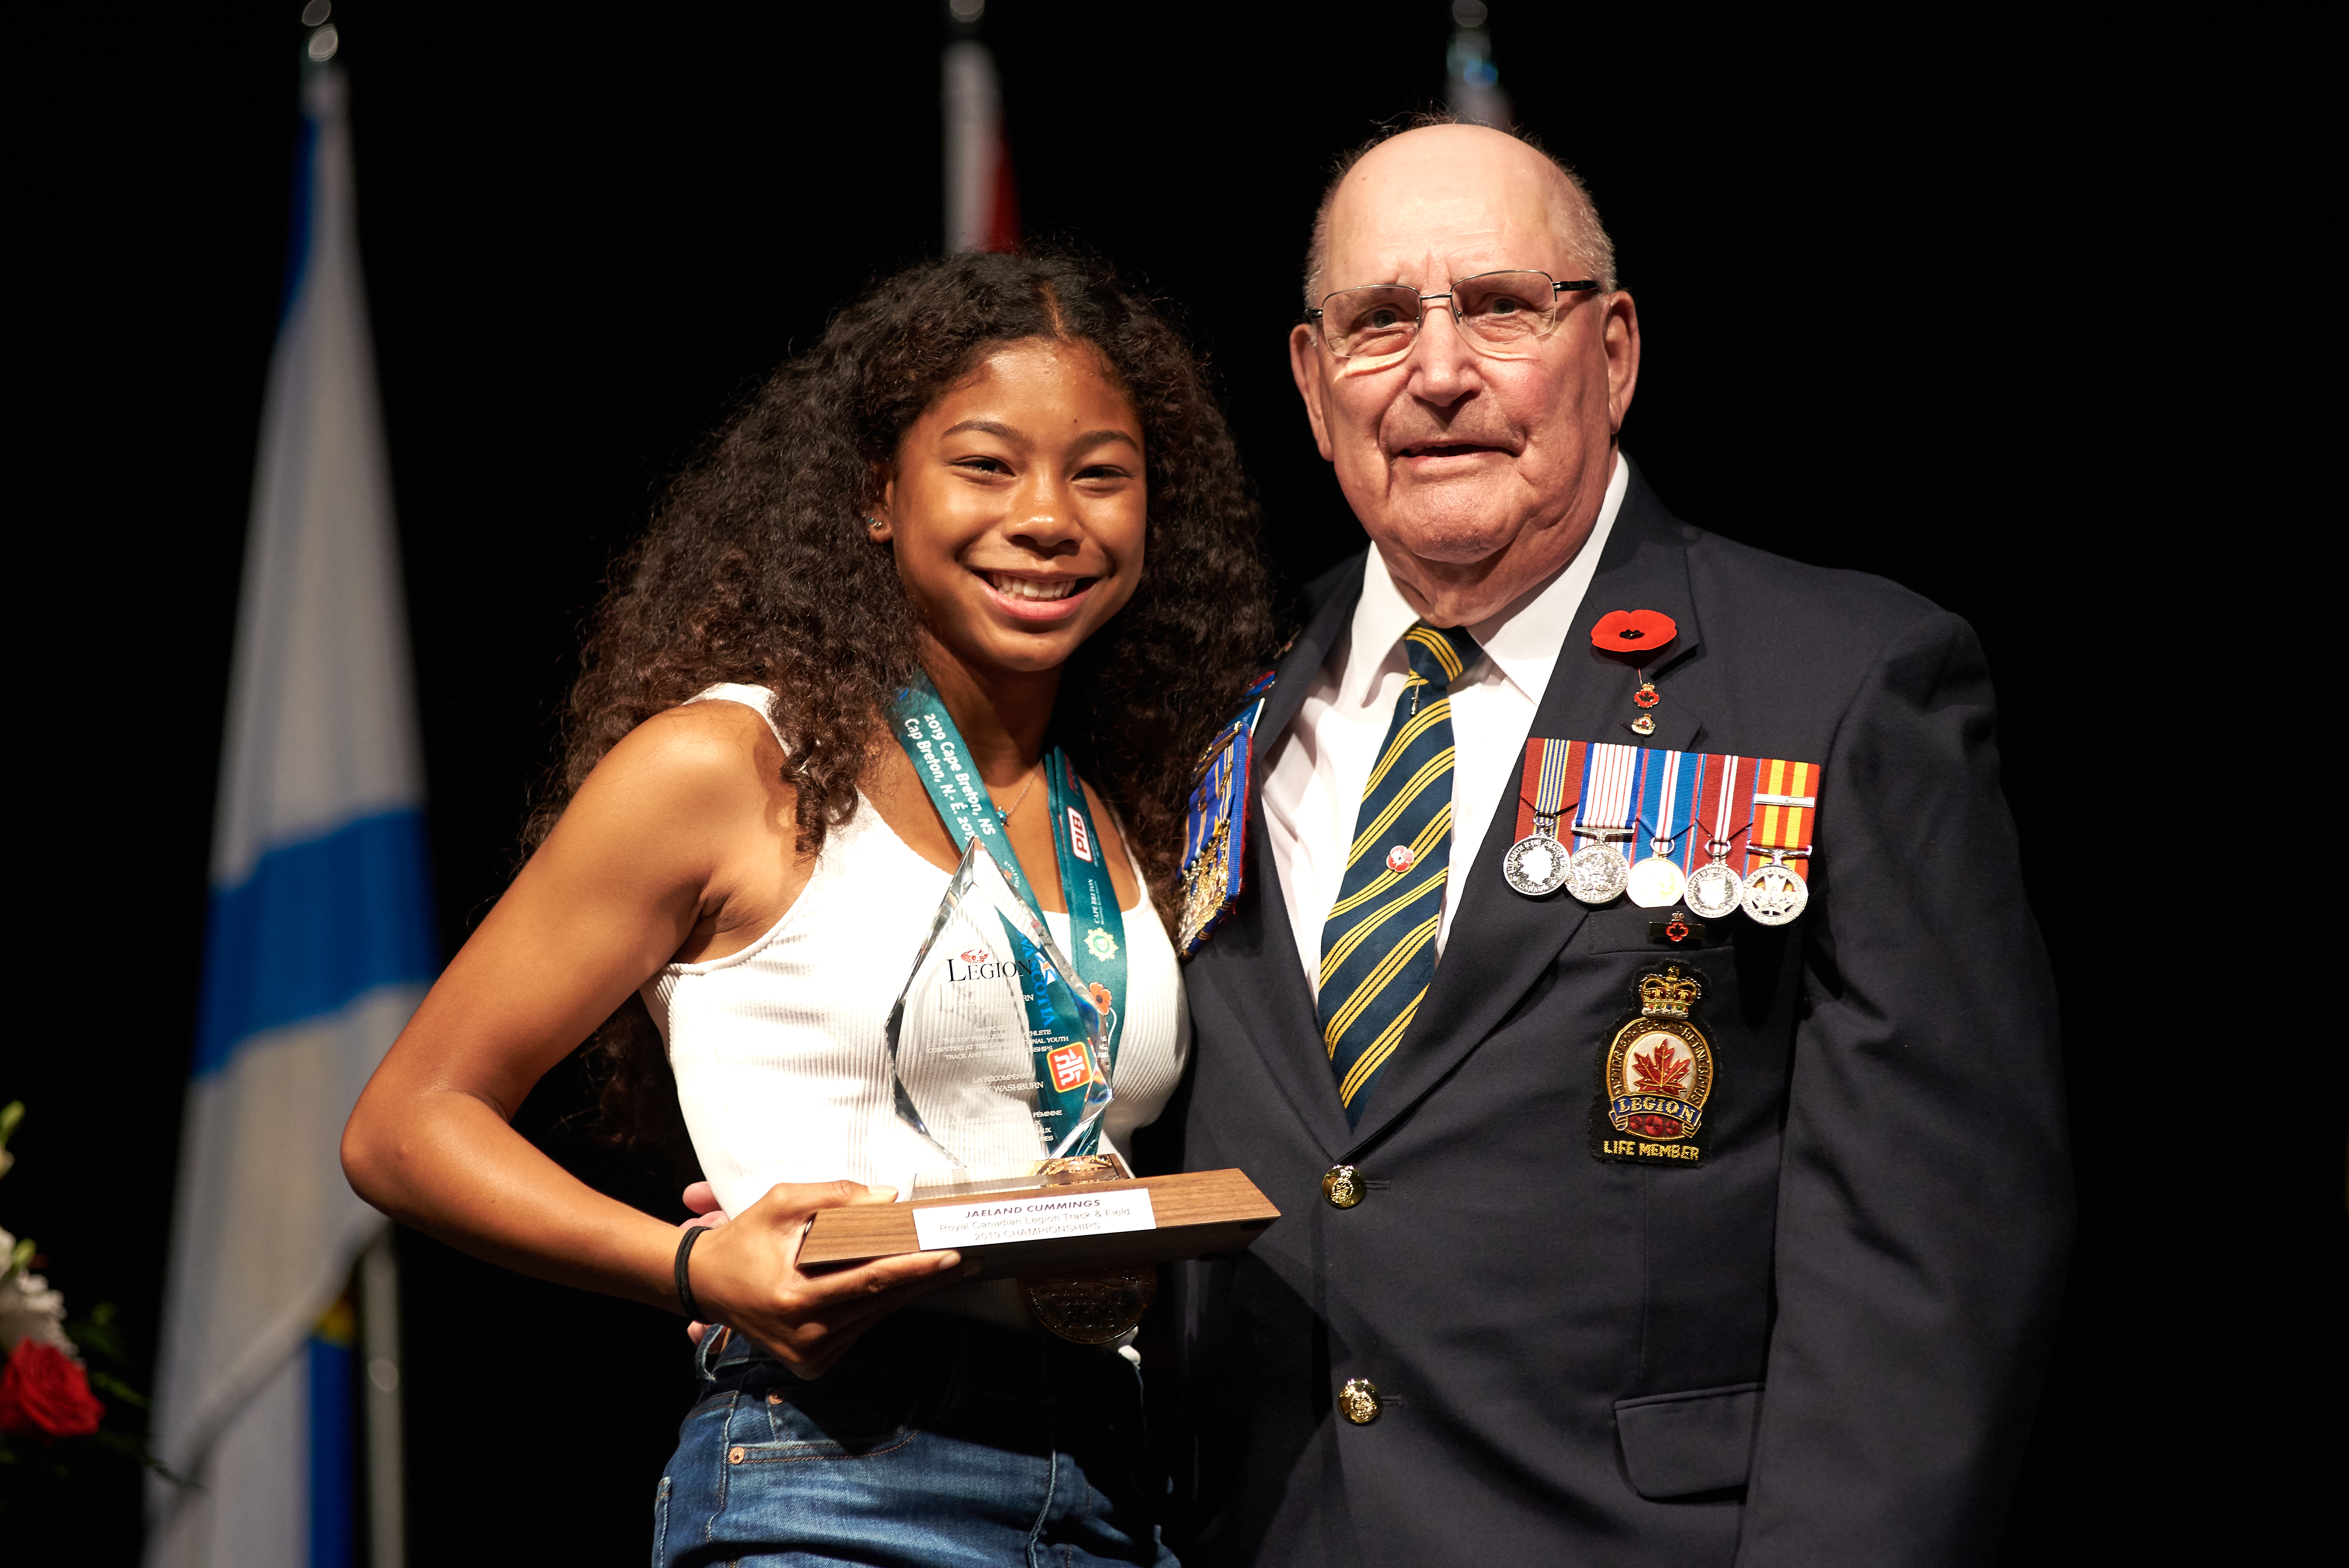 Jaeland Cummings from BC/Yukon Command receives the LeRoy Washburn Award for Top Female Athlete